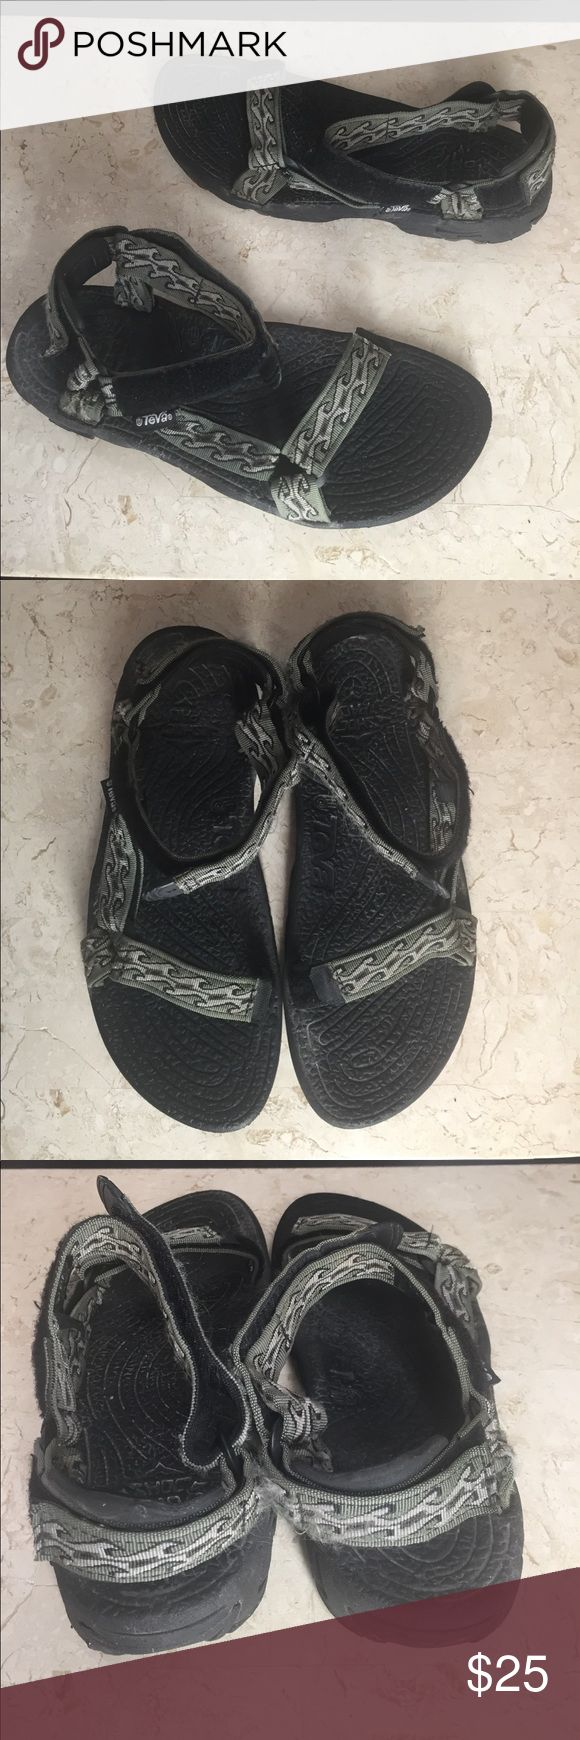 """Teva Water Sandals Mens 11 Gray Black Wave Design Teva men's waterproof walking/hiking sandals in a gray and black wave design. Men's size 11. Adjustable to custom fit to your feet.   The Insole measures about: 12"""" long 3 7/8"""" at the foot ball  171101-214-MnsBlk3 Teva Shoes Sandals & Flip-Flops"""